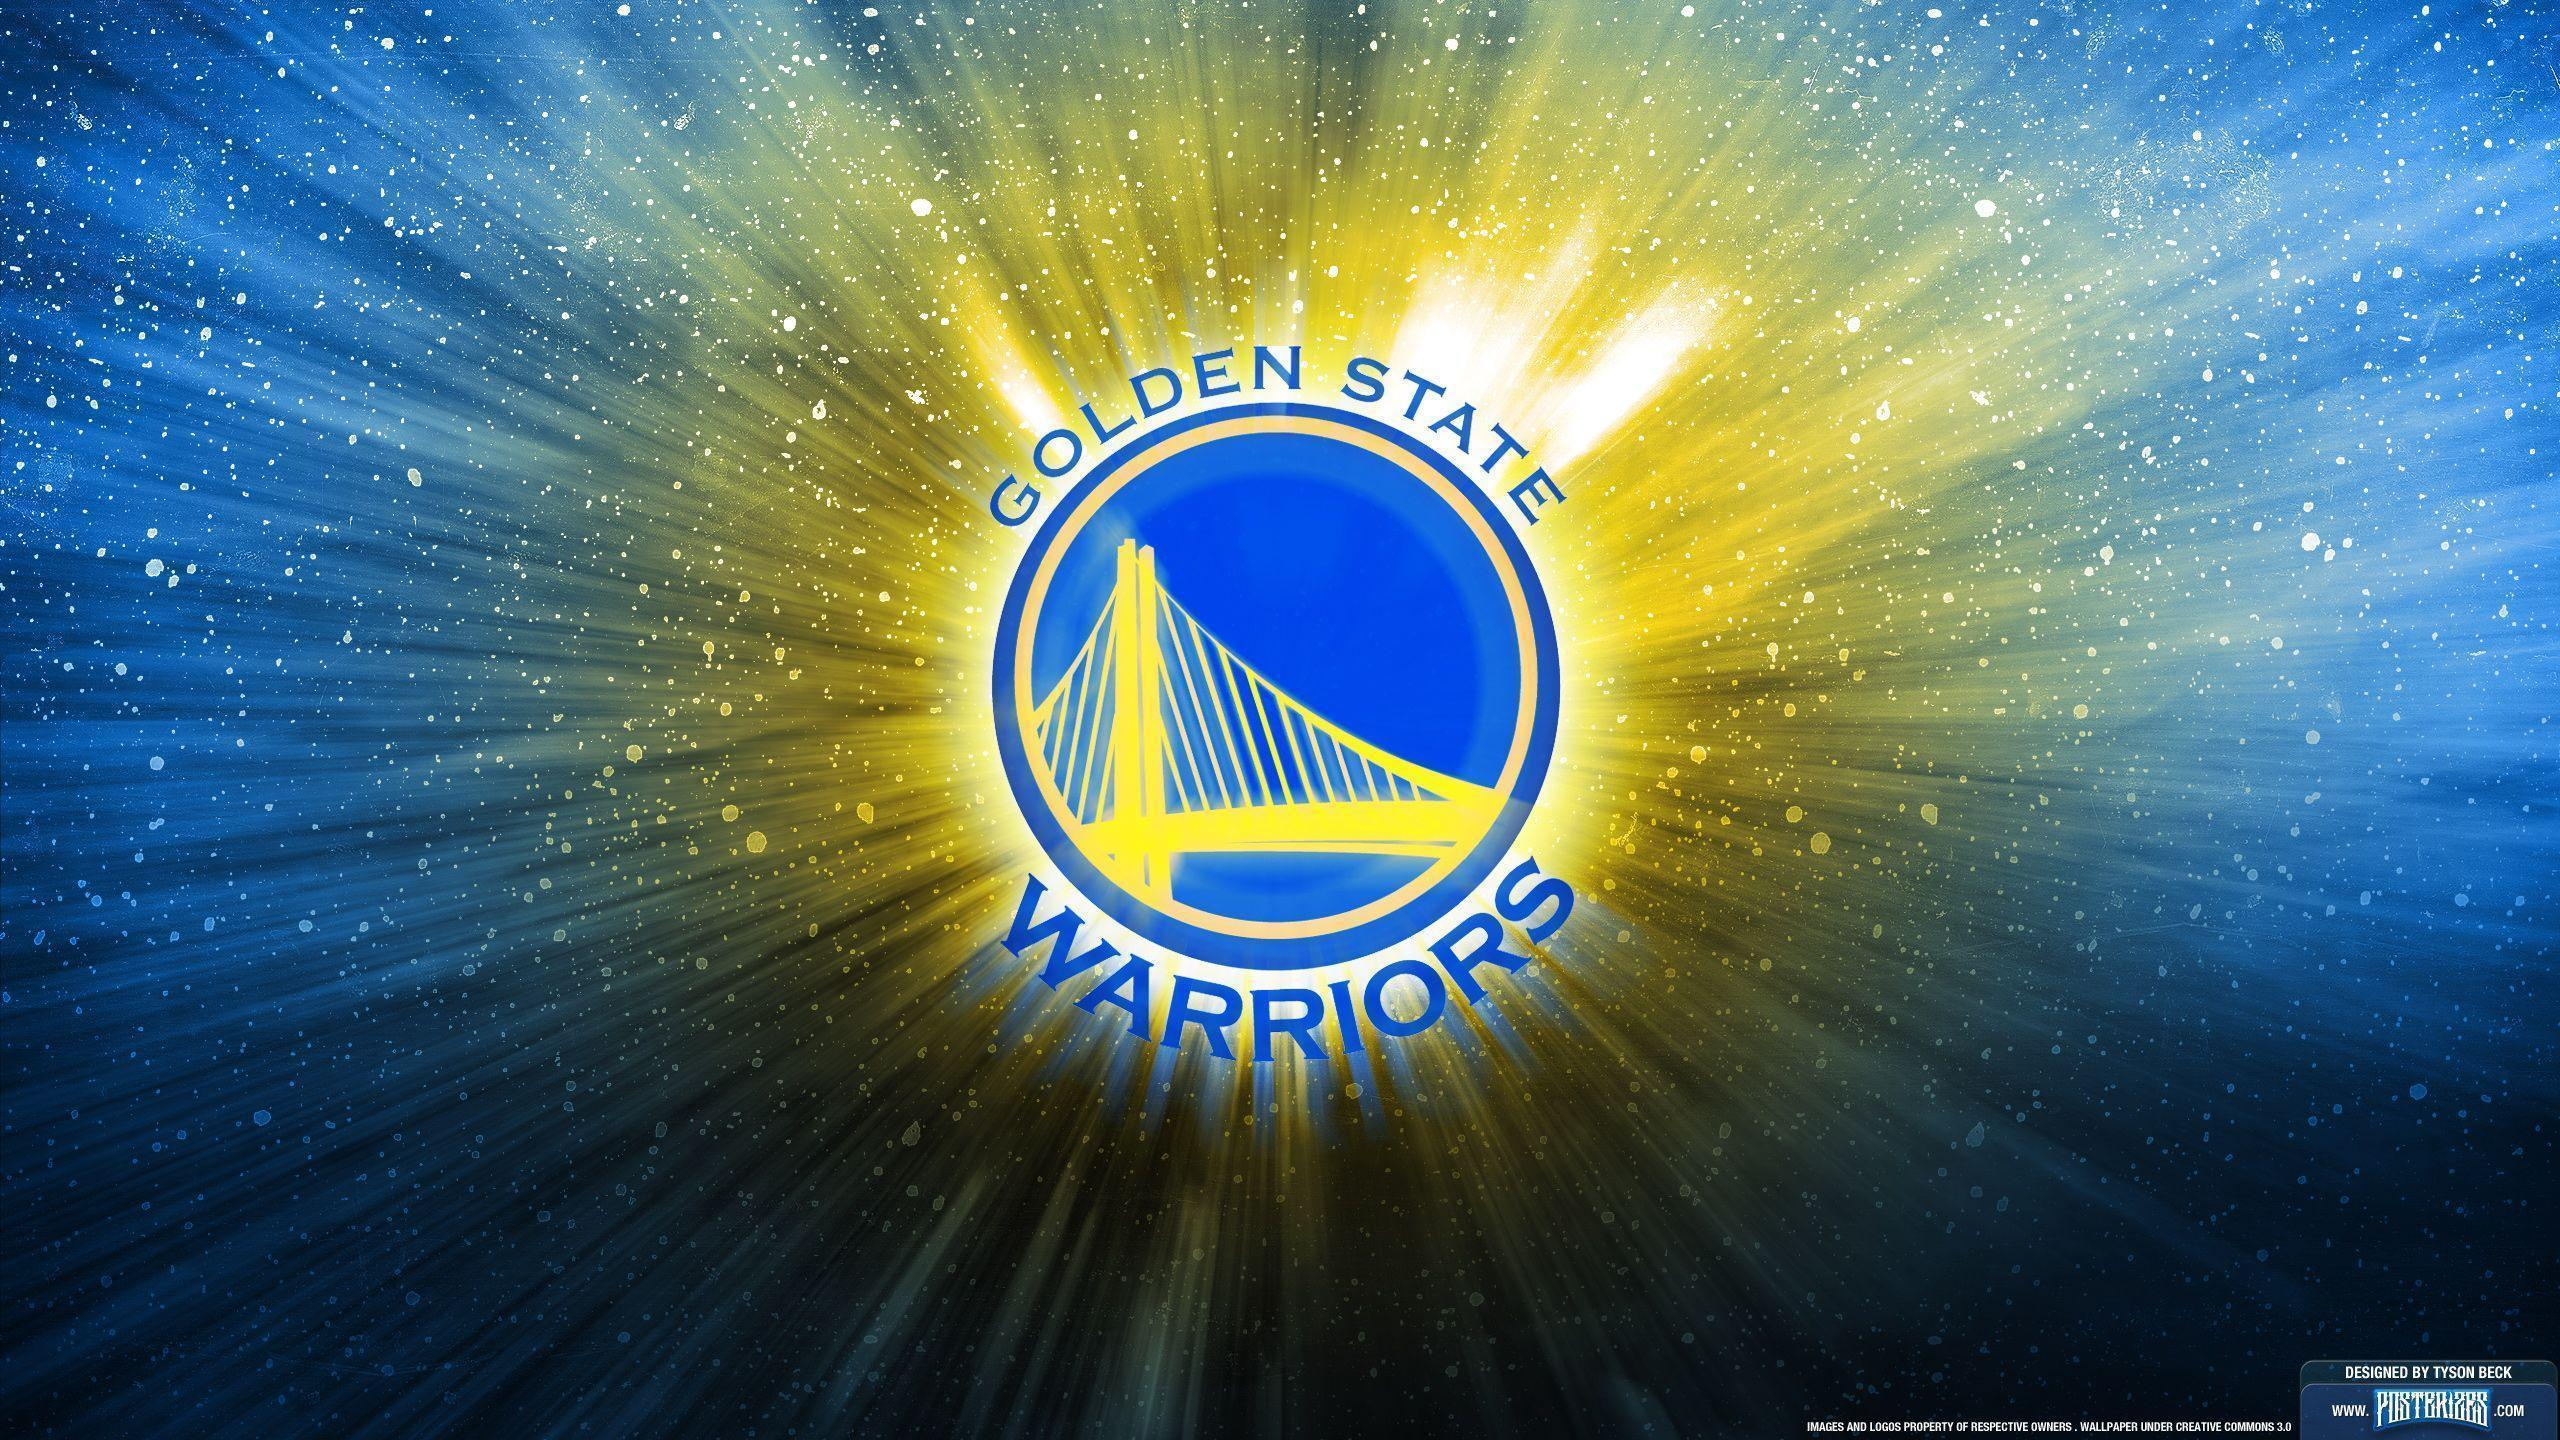 Golden State Warriors Wallpapers HD